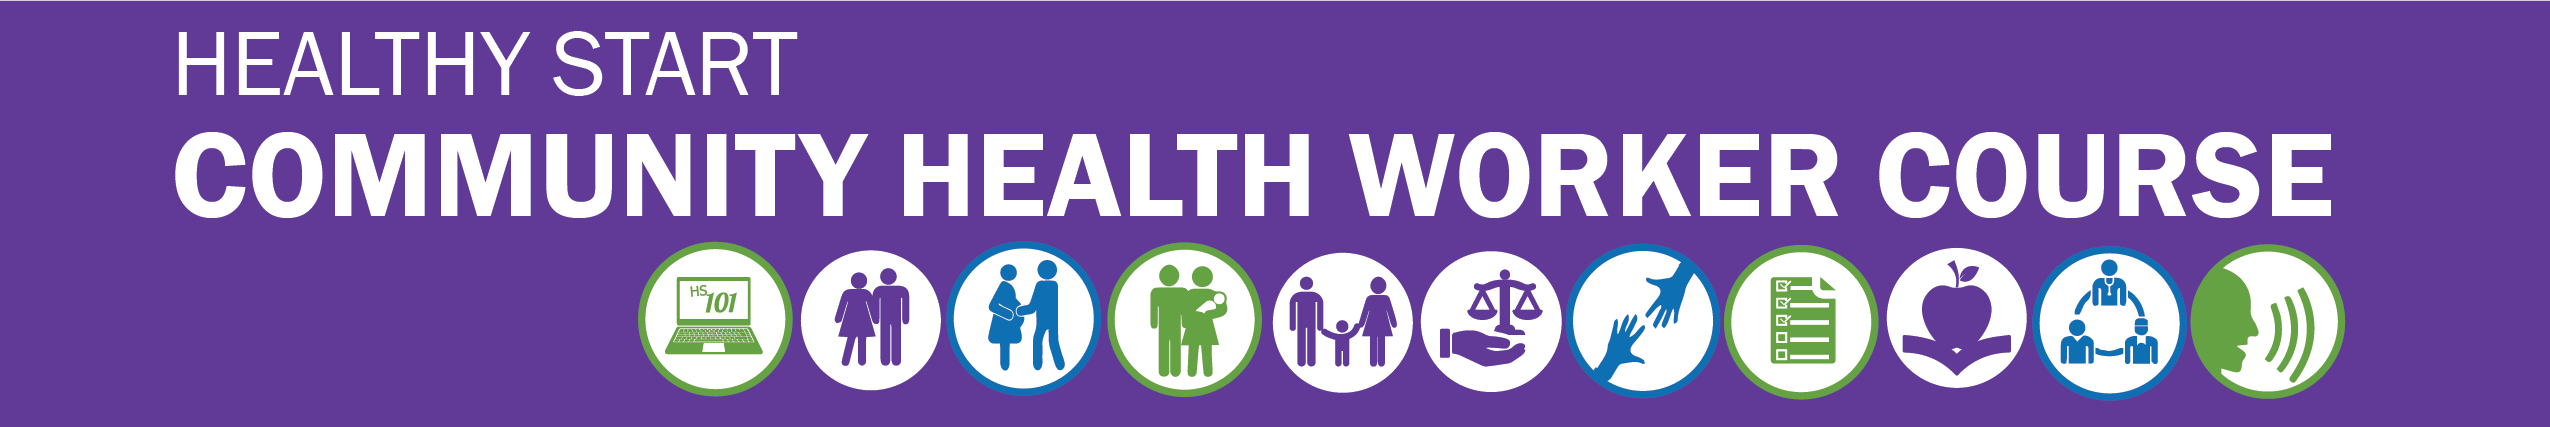 Healthy Start Community Health Worker Banner with Icons Representing the 11 Modules